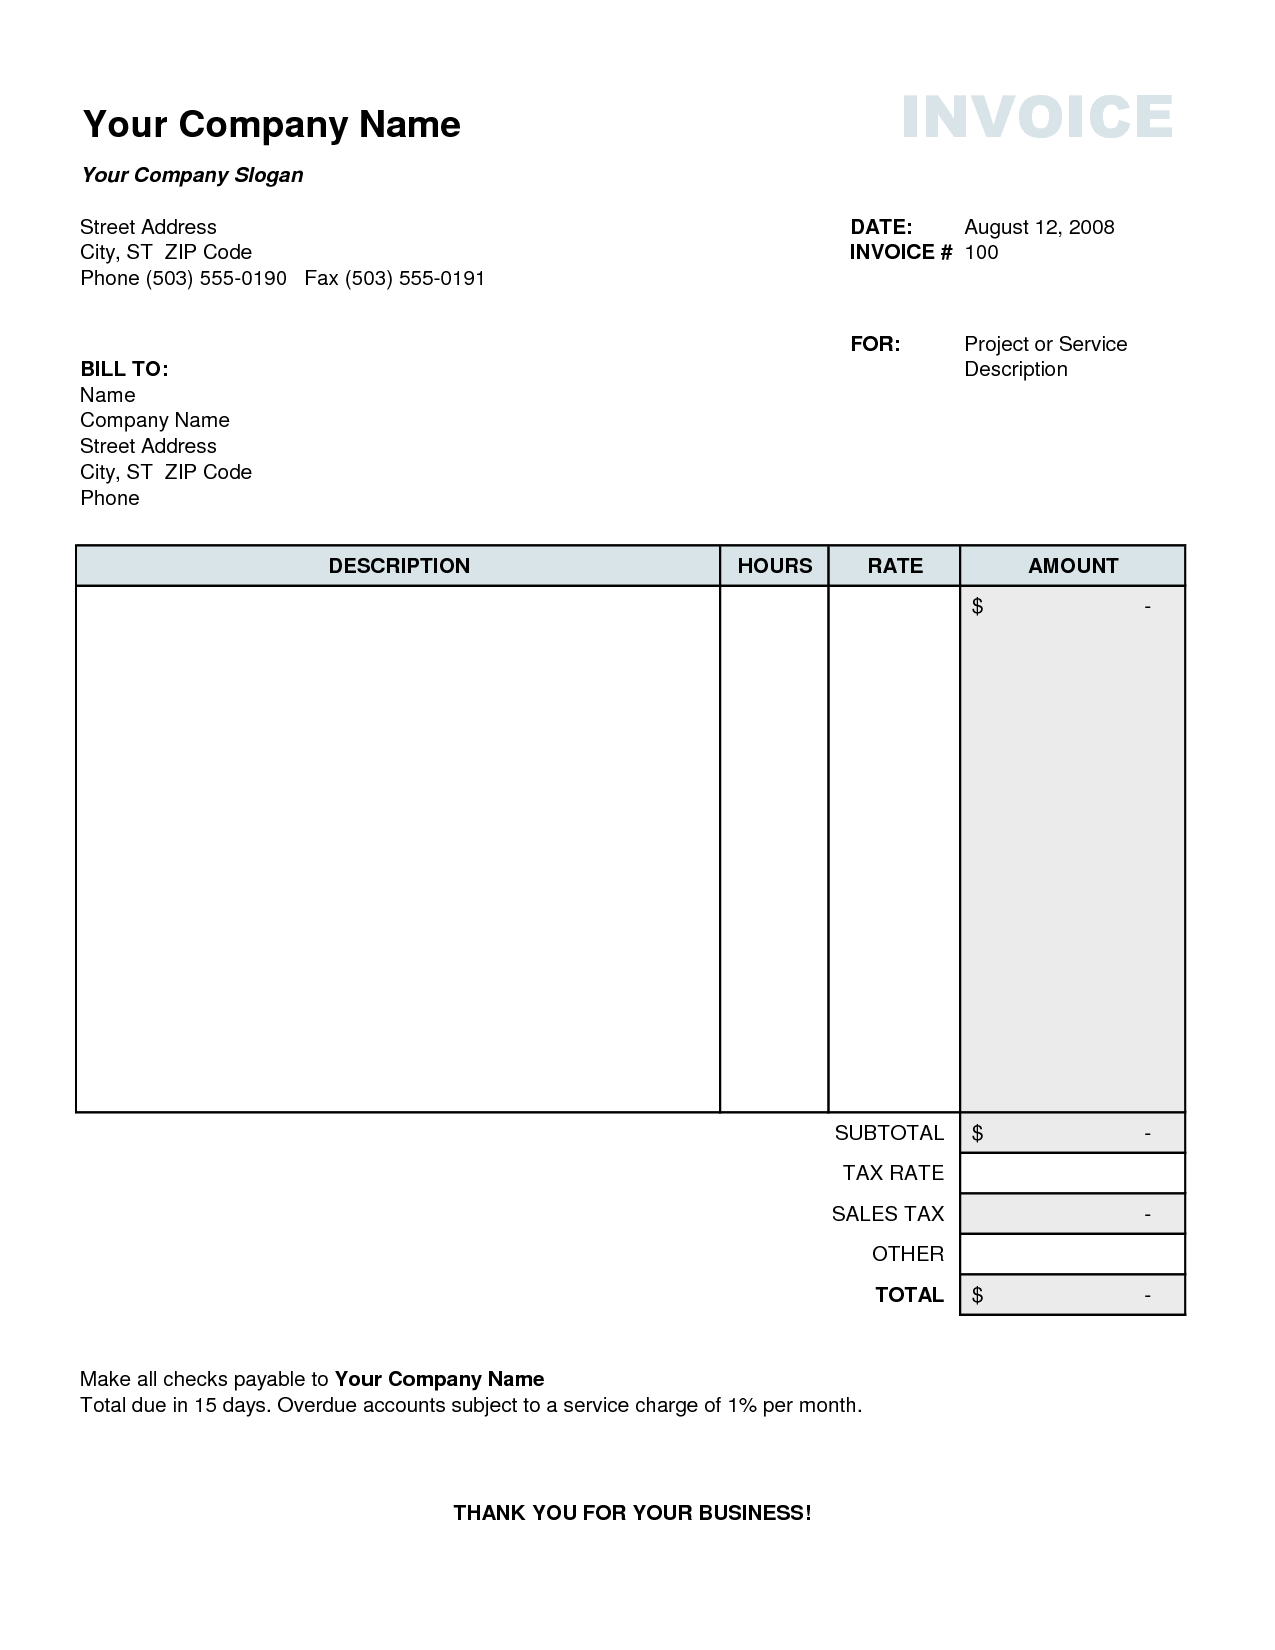 Invoice Template Excel Australia Kevincoynepagetk - Format for invoice for services for service business